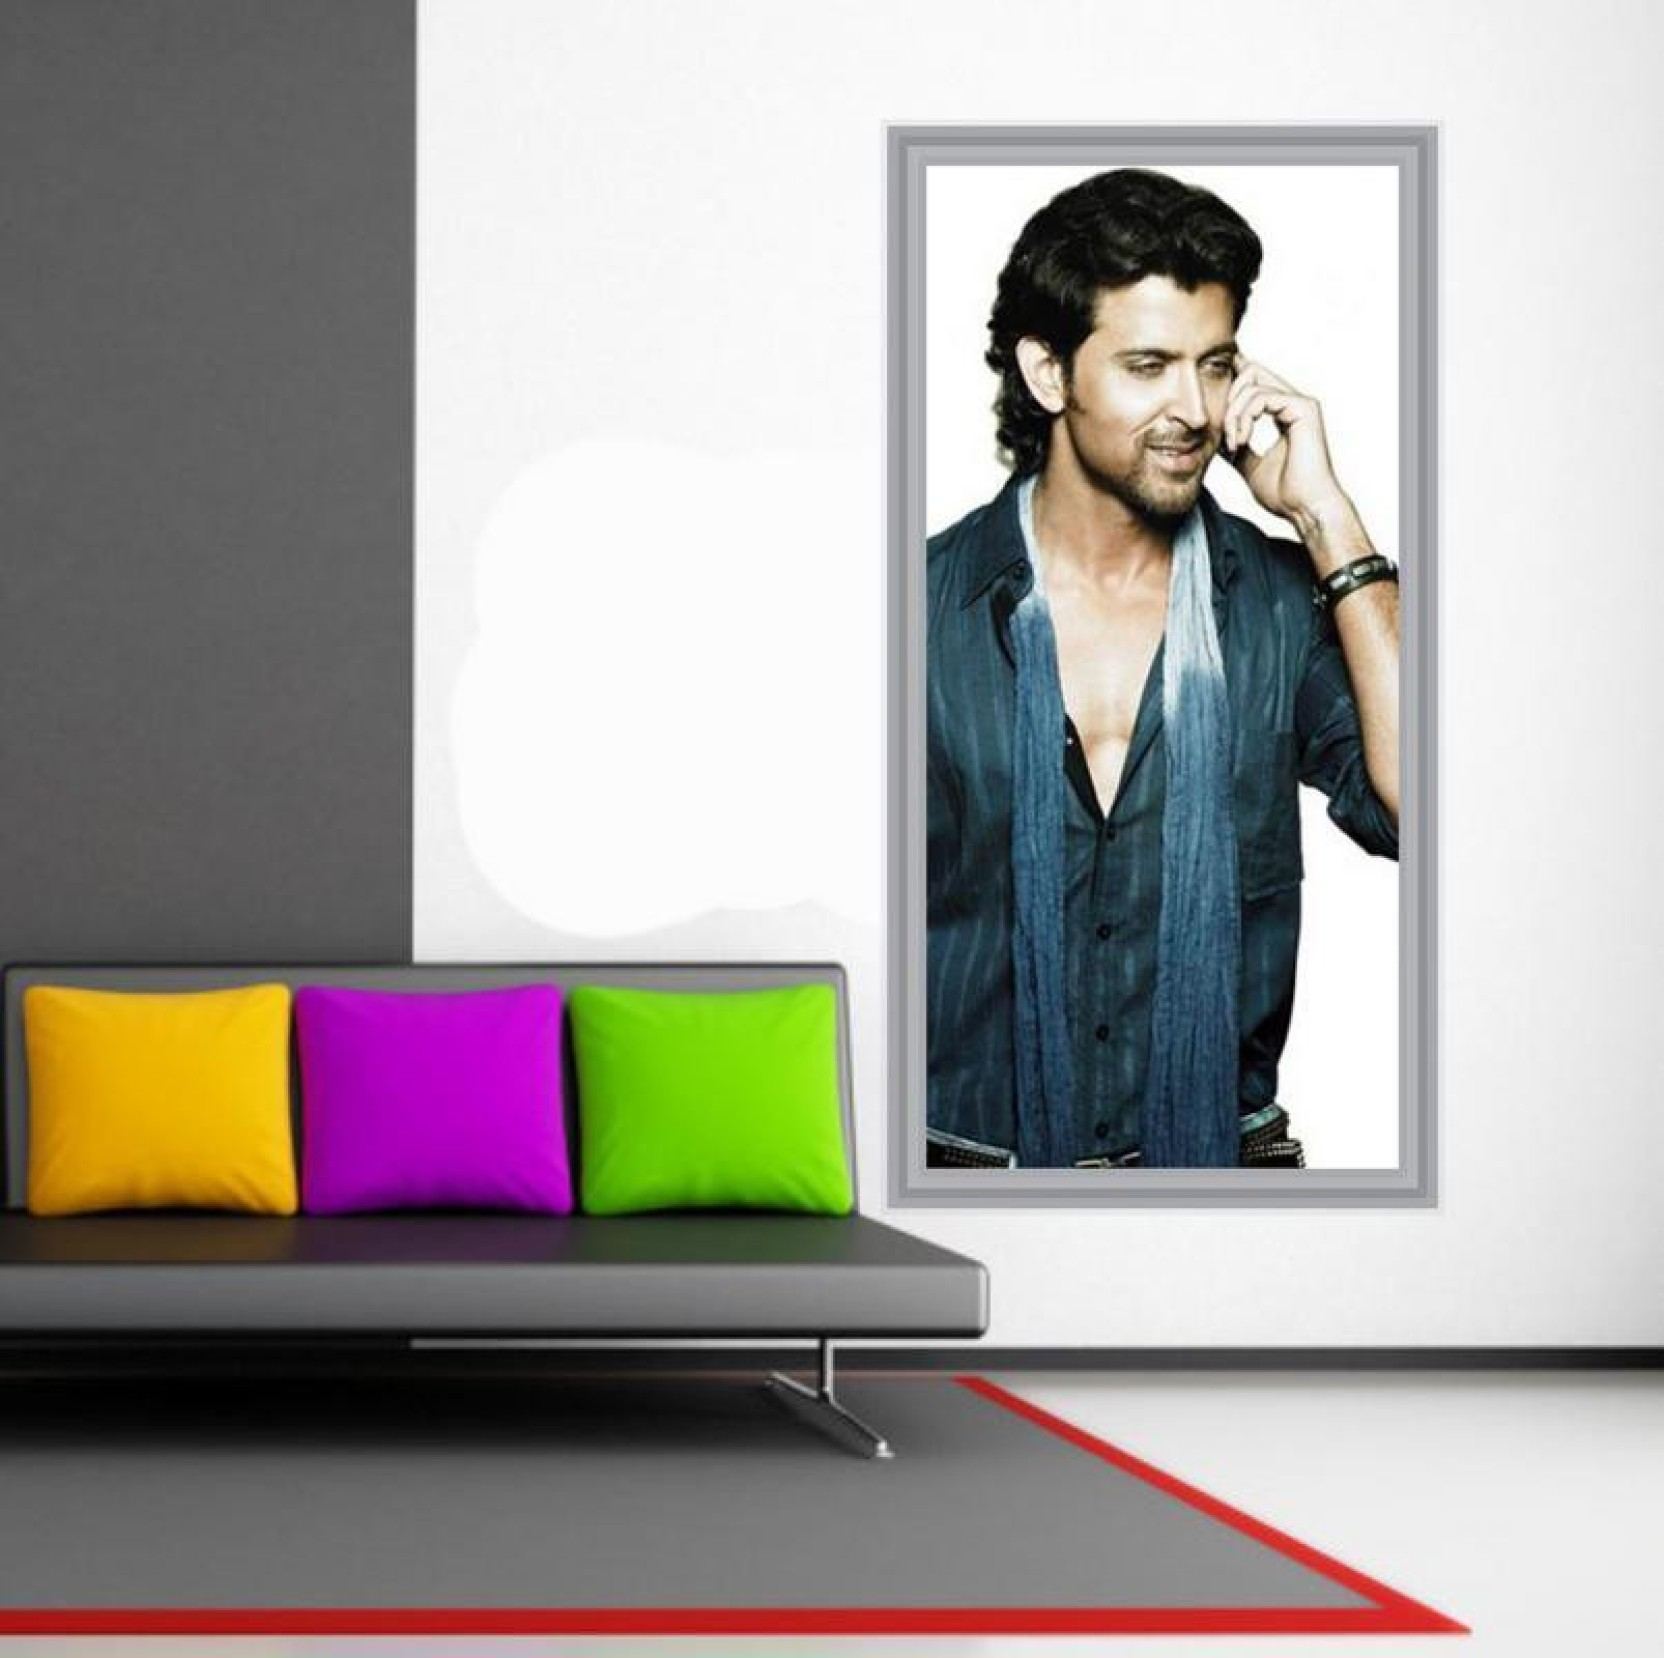 hrithik roshan wall poster paper print - personalities posters in